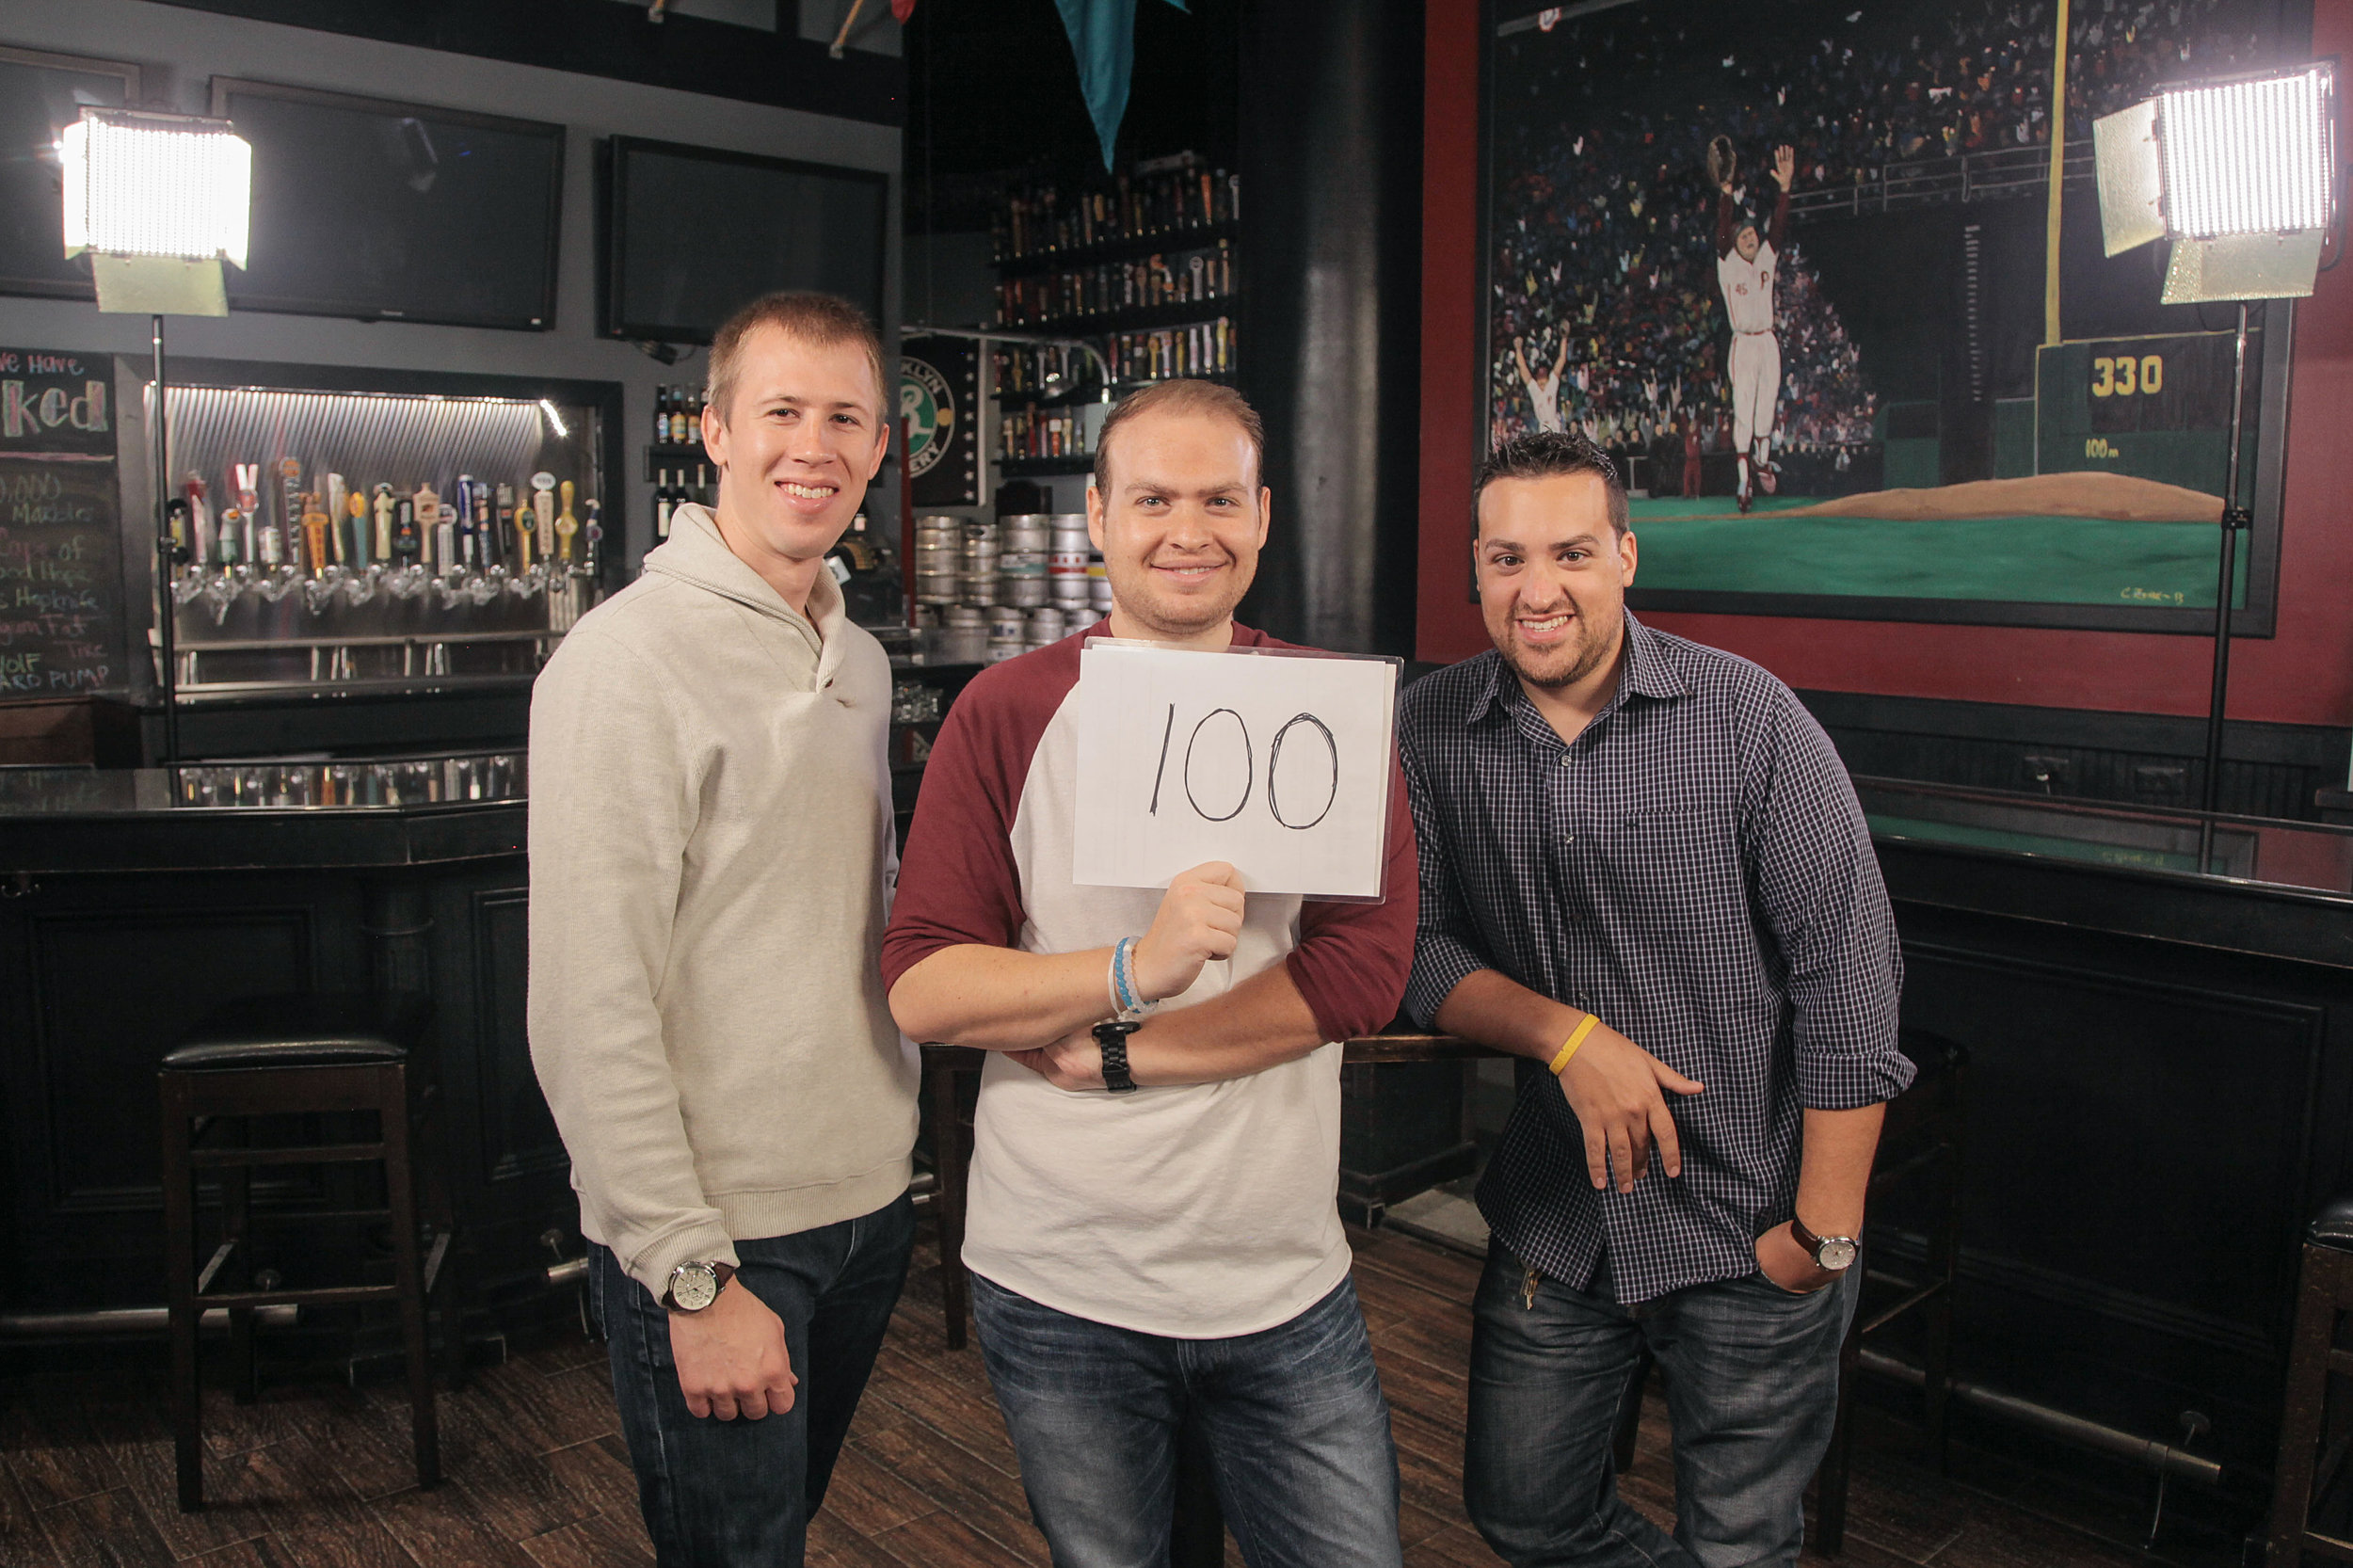 Among our team's many accomplishments included producing 100 television episodes across five years, for Temple University Athletics and Phillies Nation. We celebrated the century mark in 2015 with our friend, turned colleague, turned client, Rudy Mezzy.